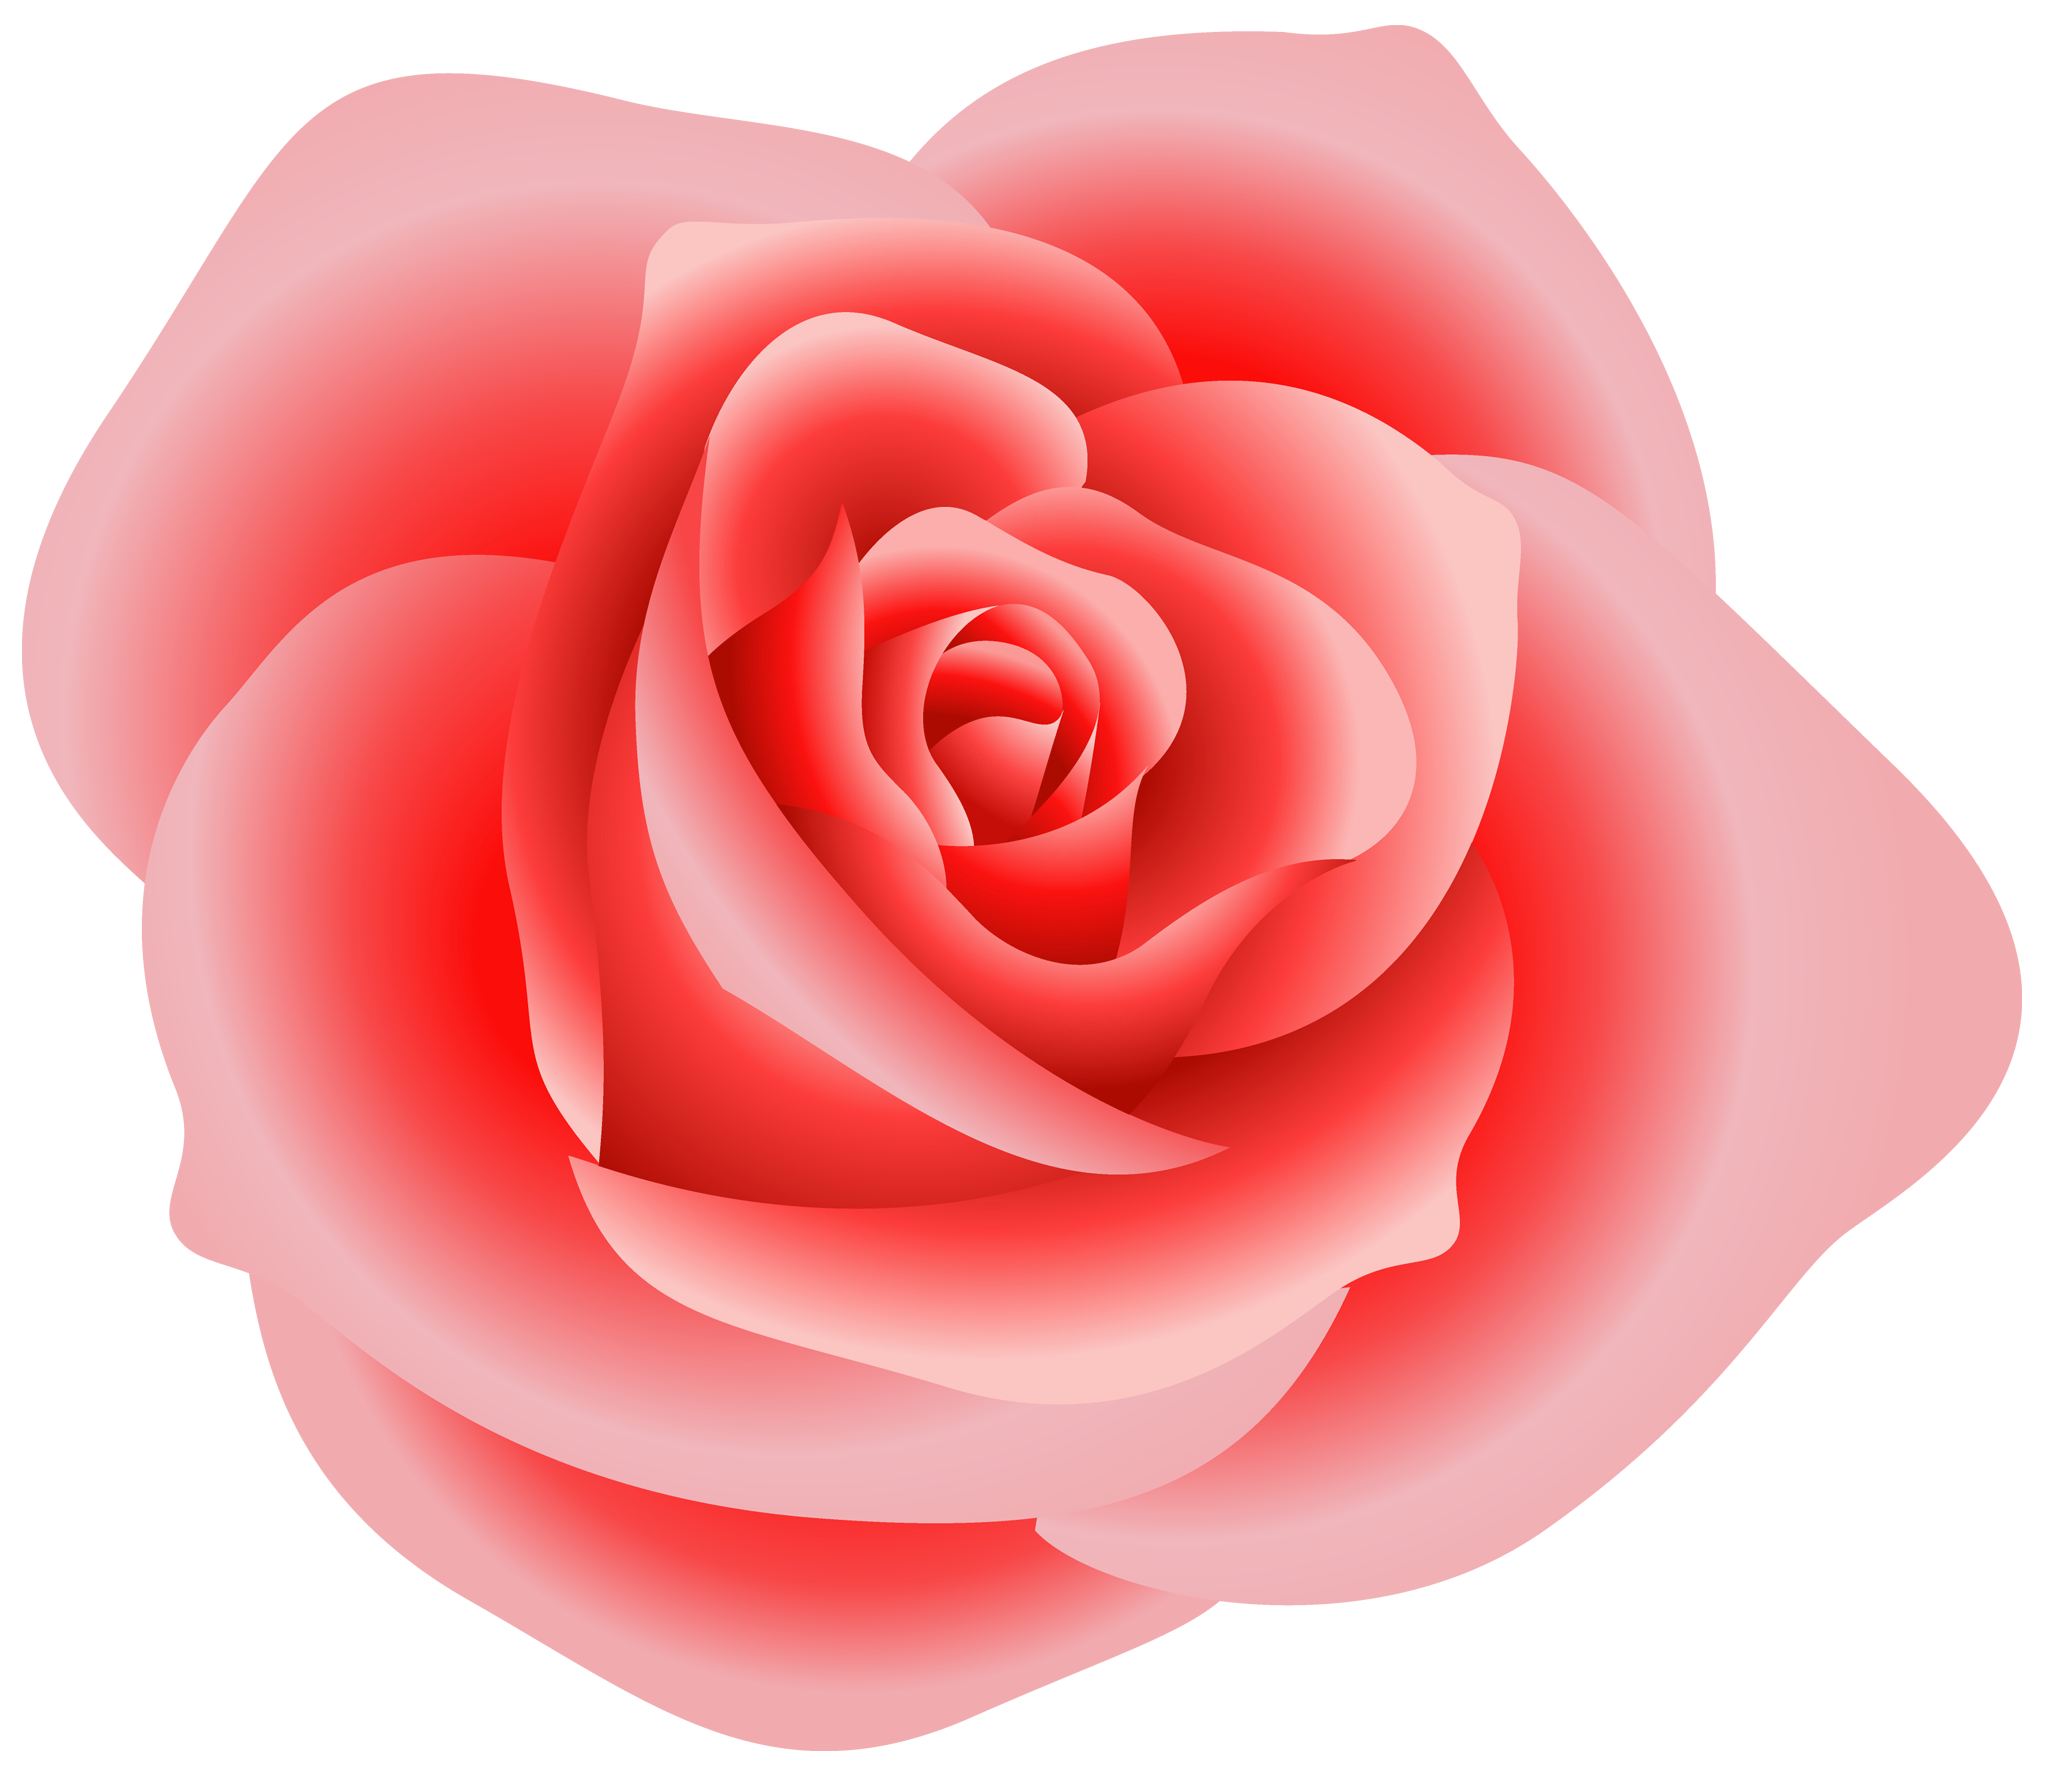 Roses cliparts image royalty free Free Roses Clip Art Pictures - Clipartix image royalty free